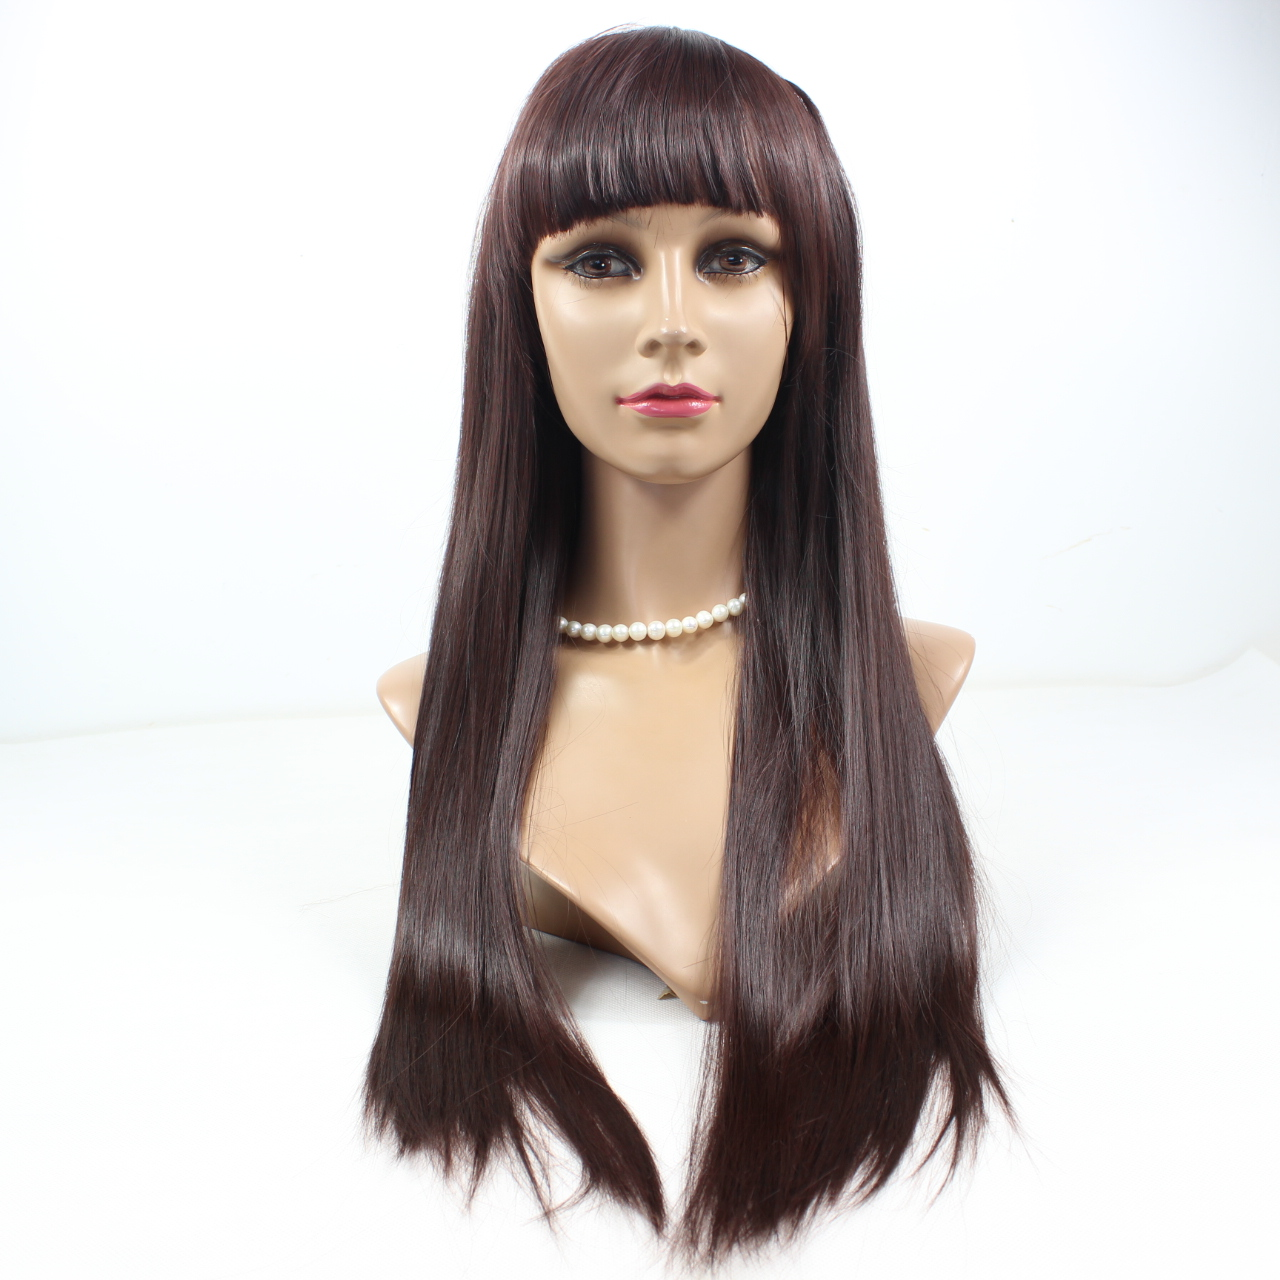 Lace front wig (4).JPG